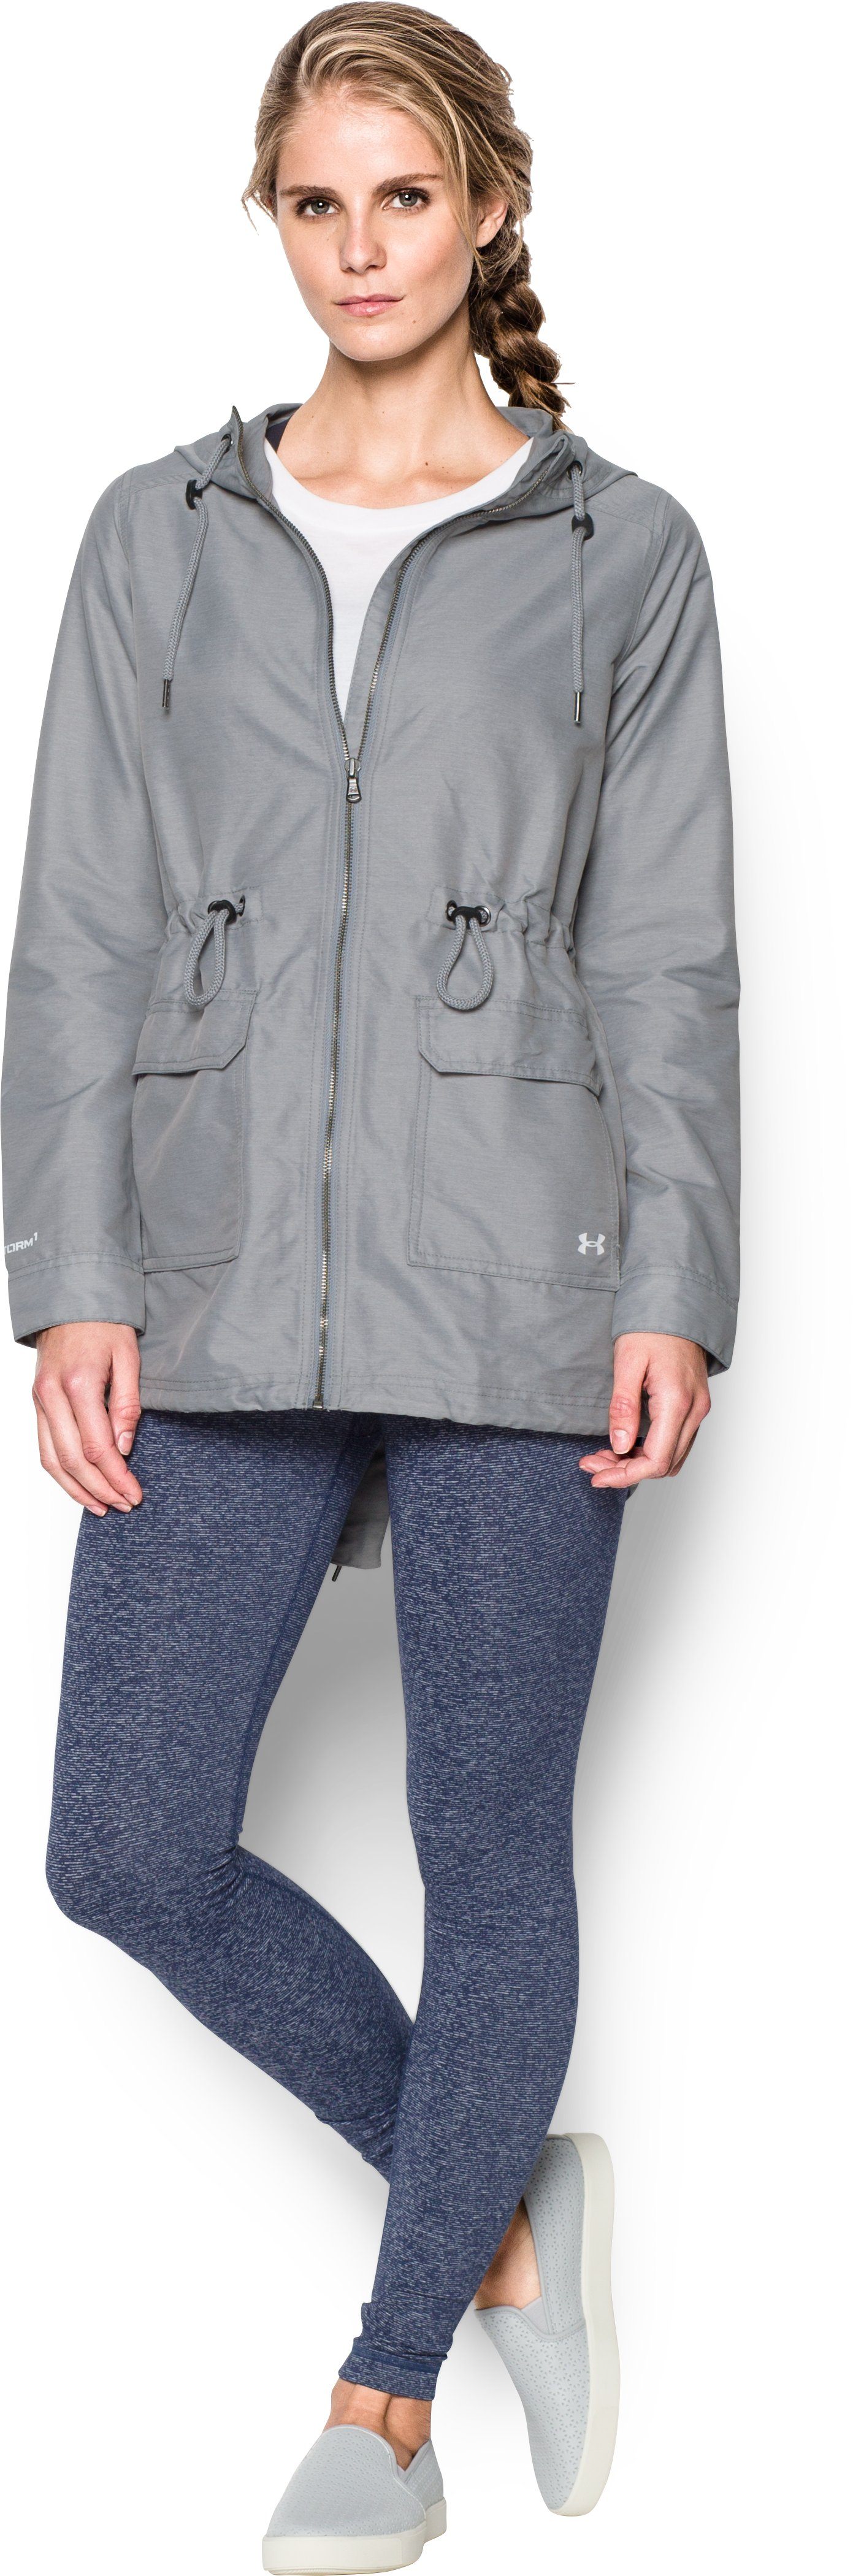 Women's Twill Rain Jacket, Steel, Front